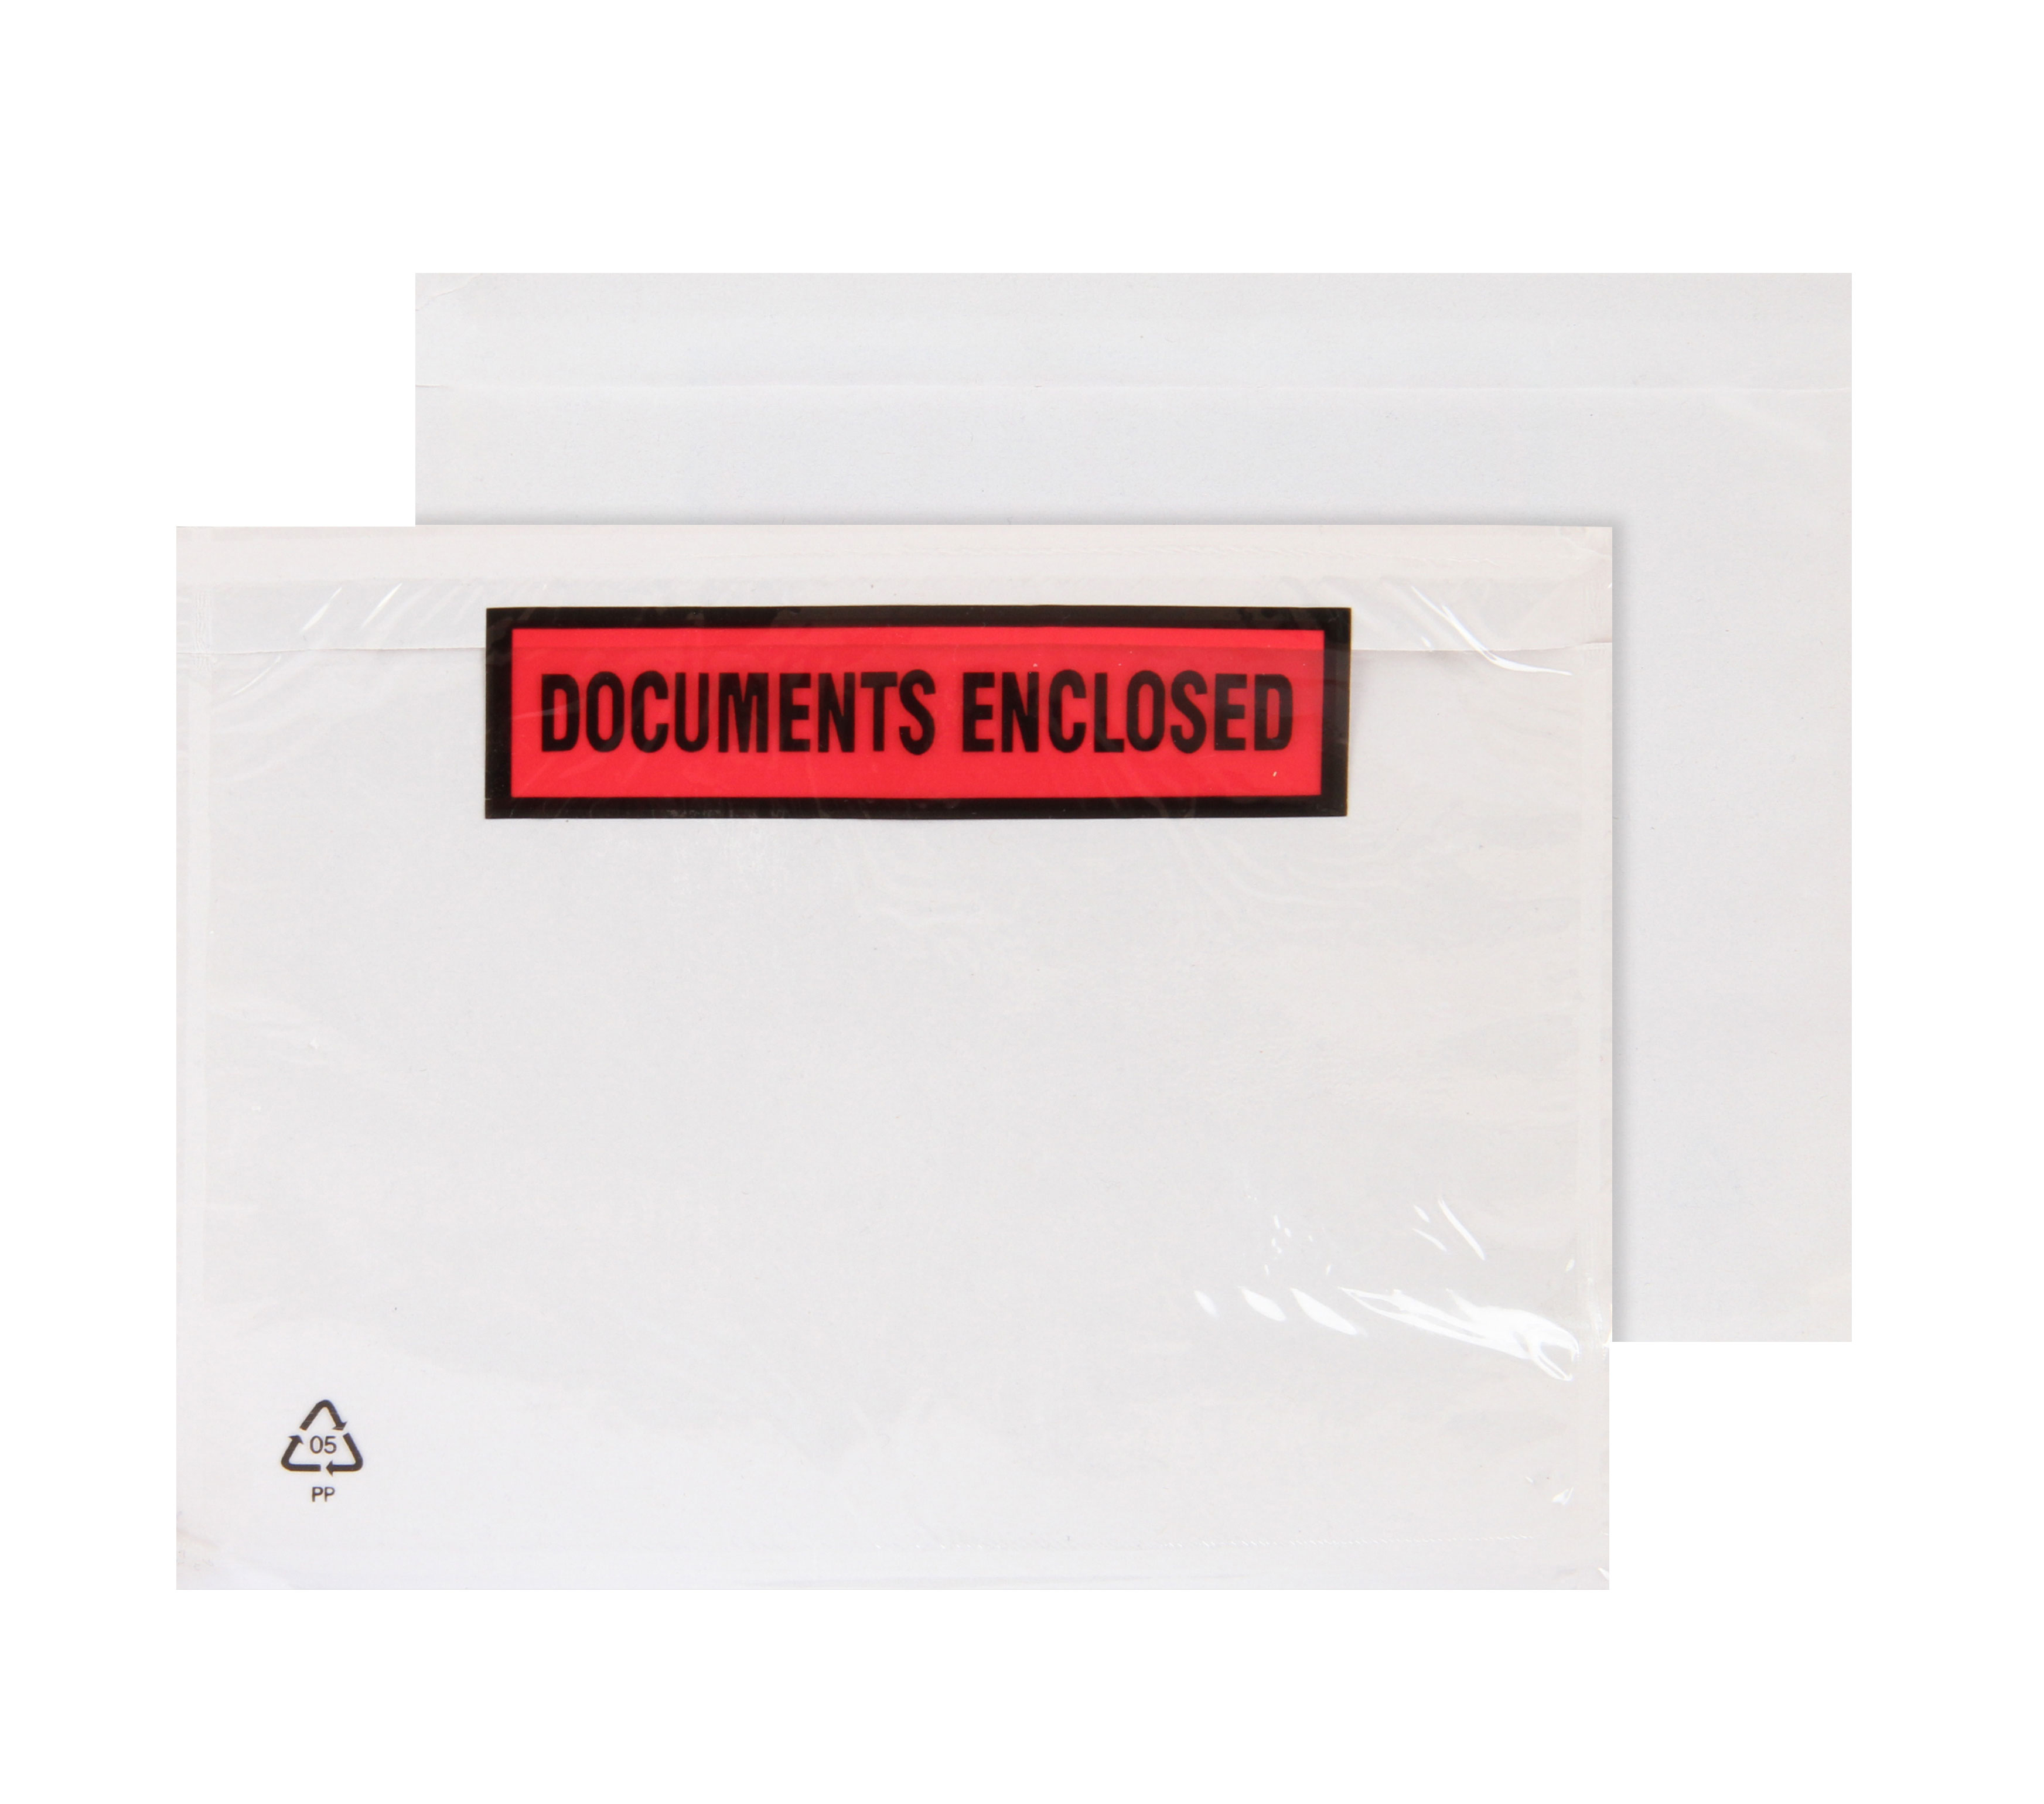 blake envelopes Blake A6 168x126mm Printeddocument Enclosed Wallet Pk1000 Pde22 - AD01